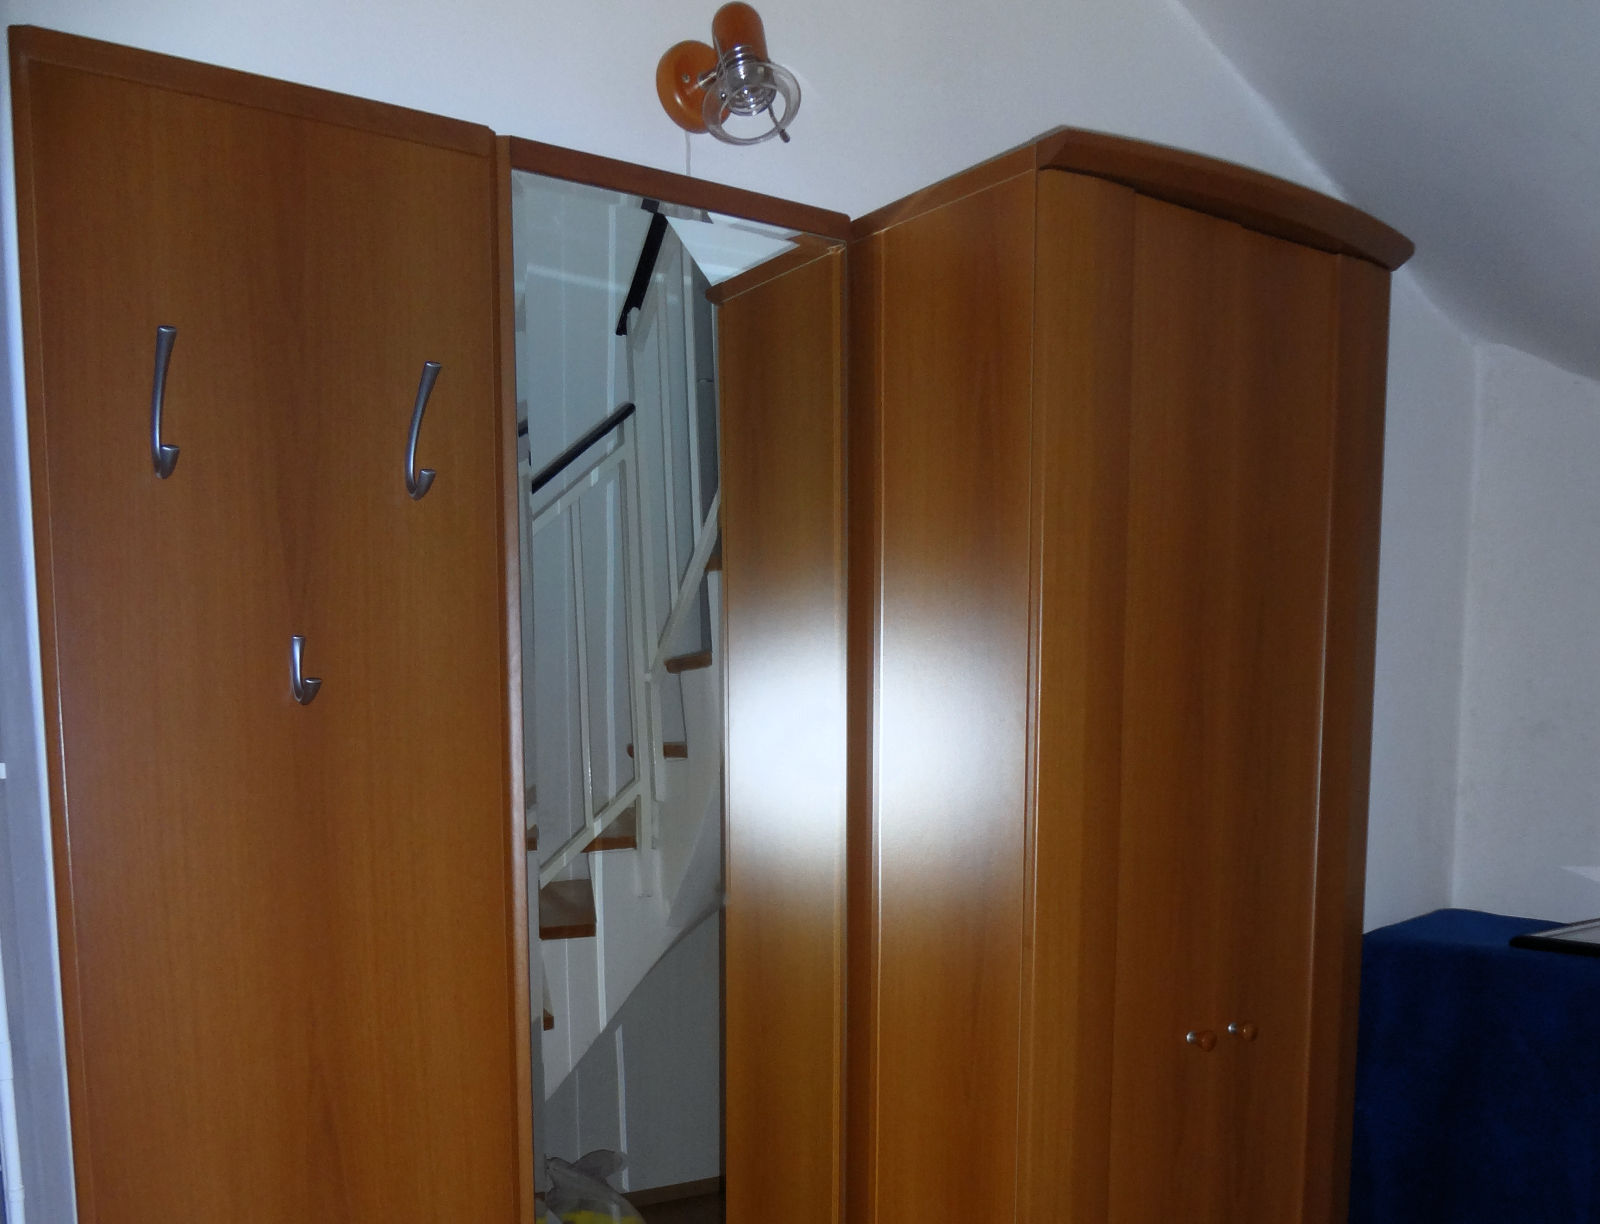 A closet in the hallway of the Fine Stay Bled apartment in Lake Bled, Slovenia